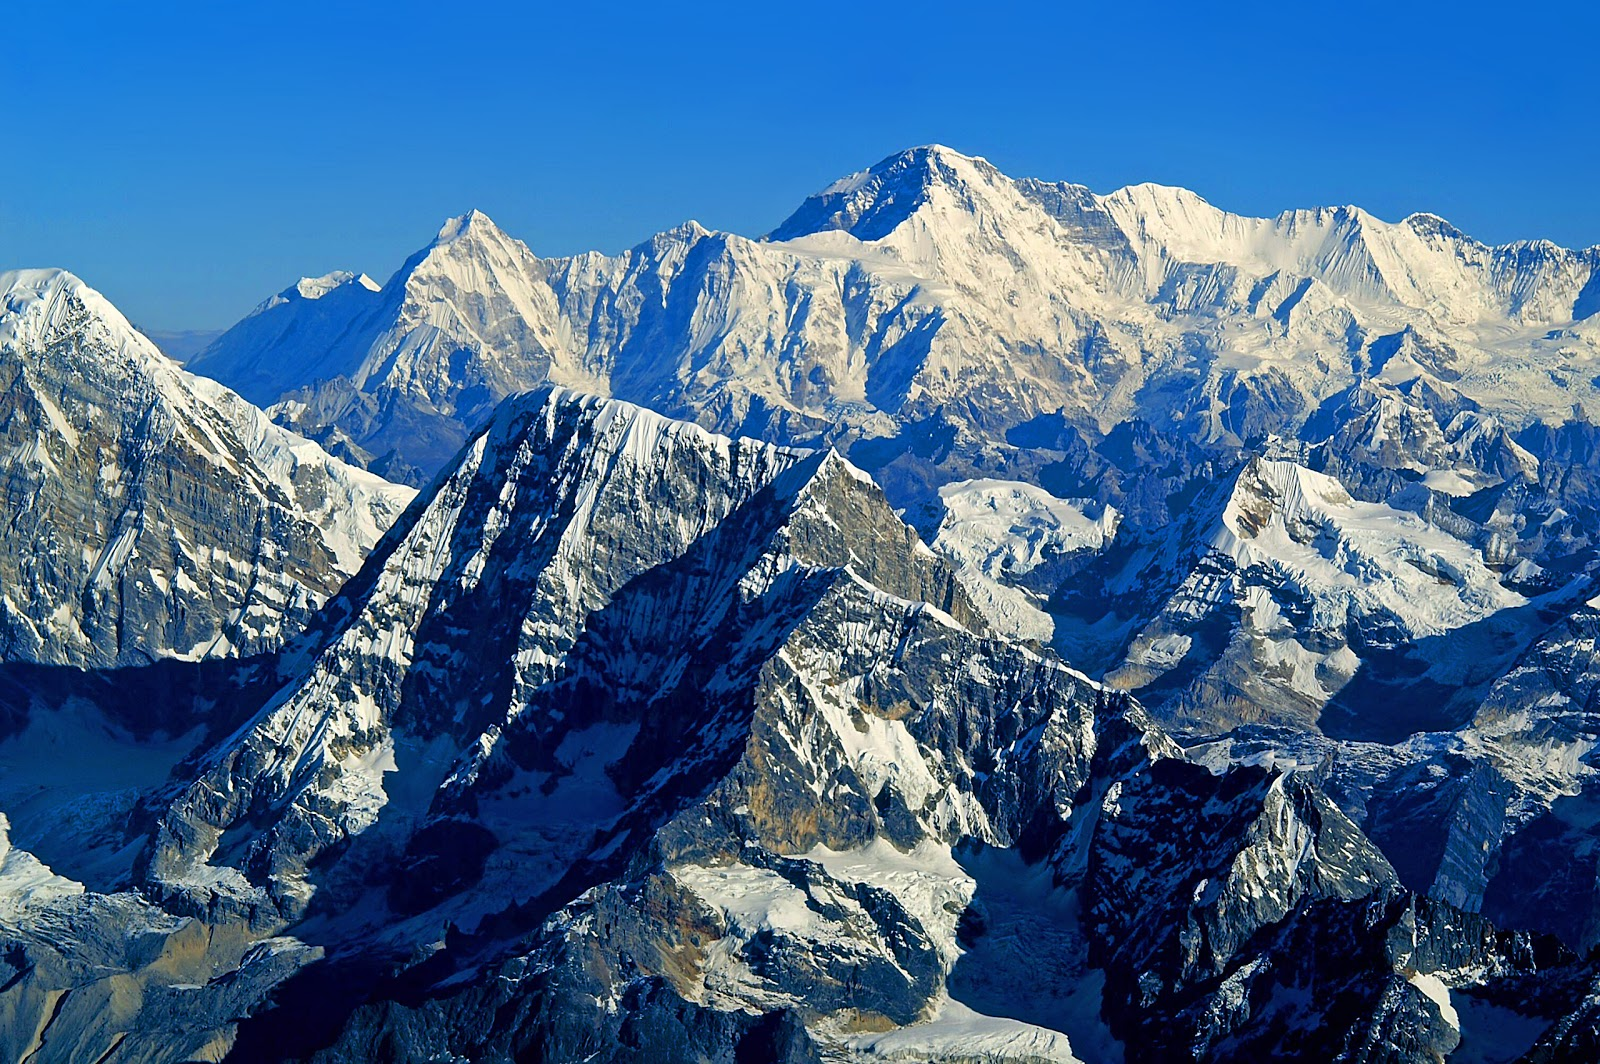 Himalayas hd wallpapers high definition free background - Himalaya pictures wallpaper ...